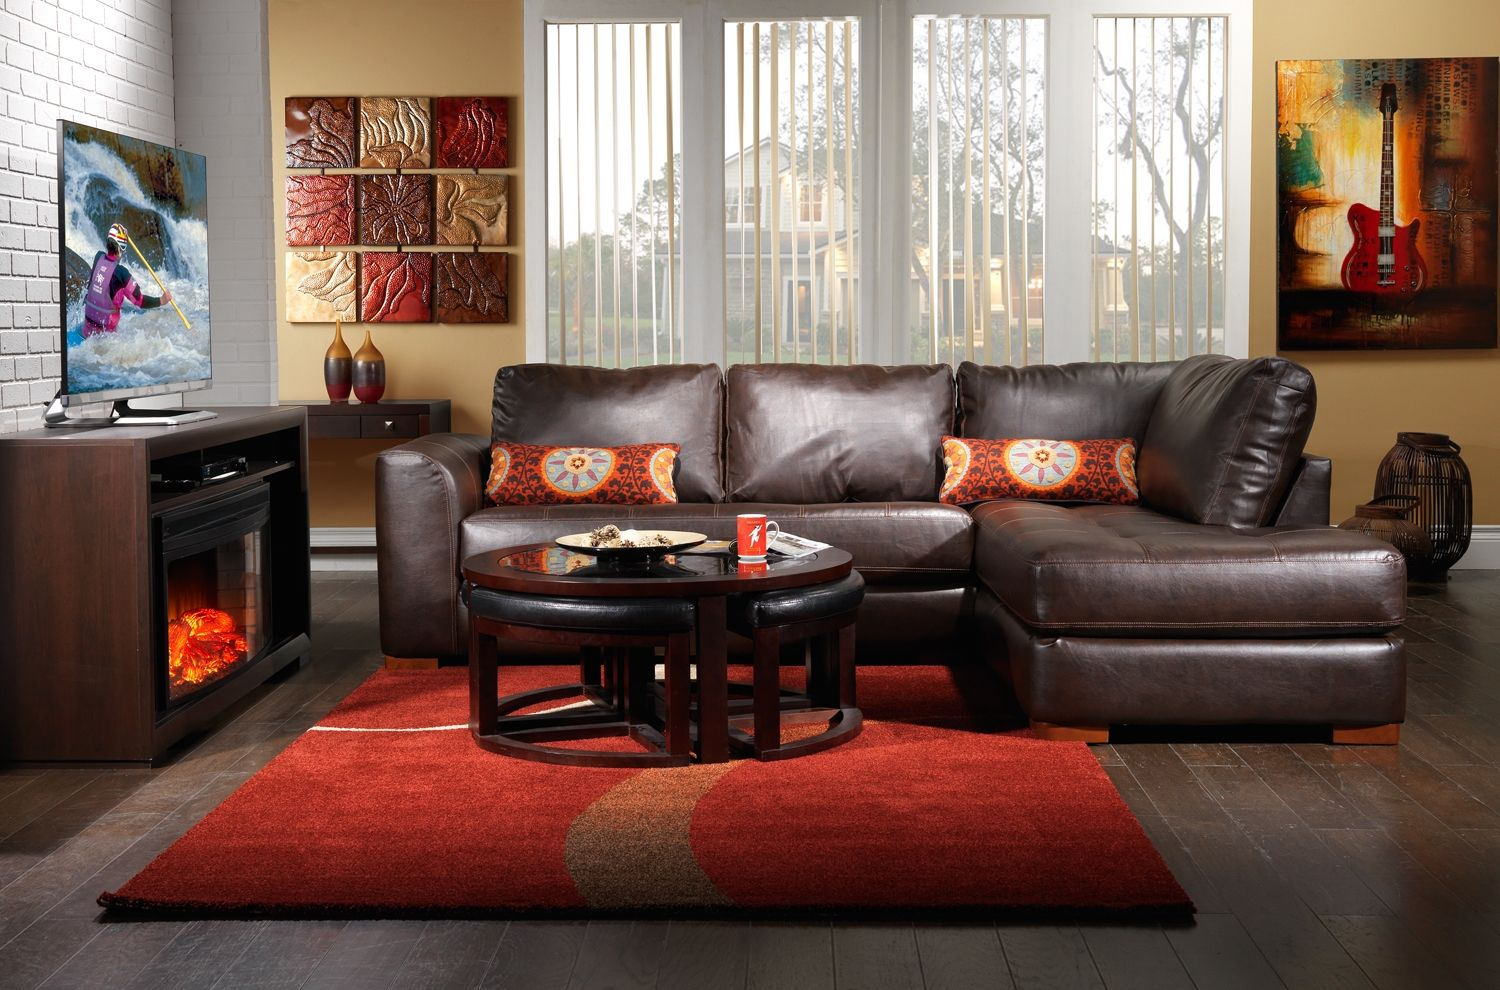 naples iii upholstery collection  leon's  perfect living